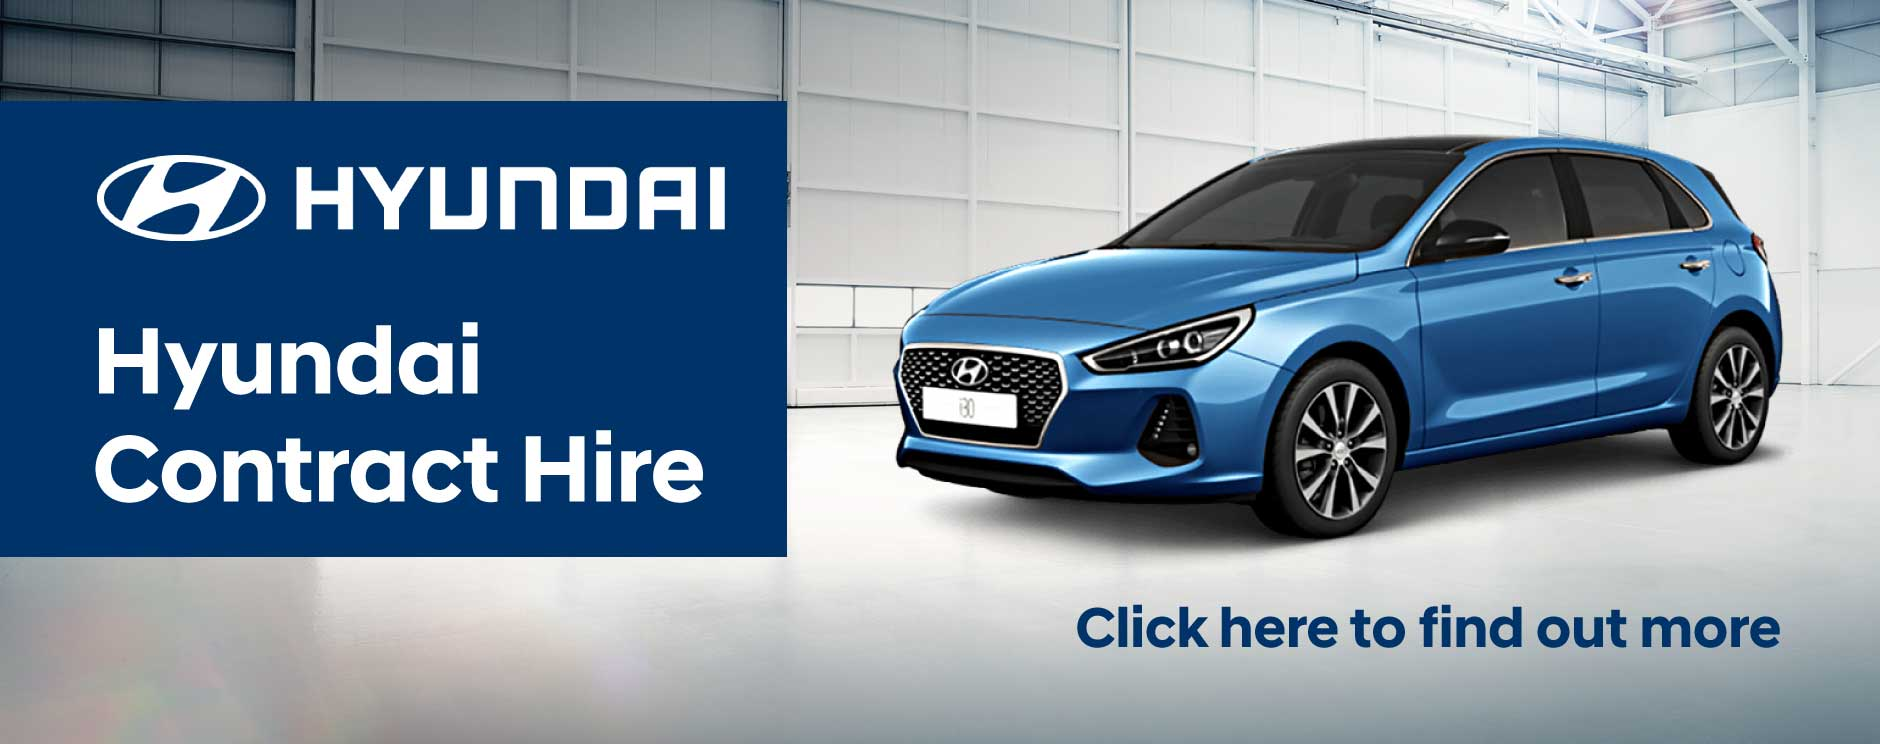 Hyundai Contract Hire